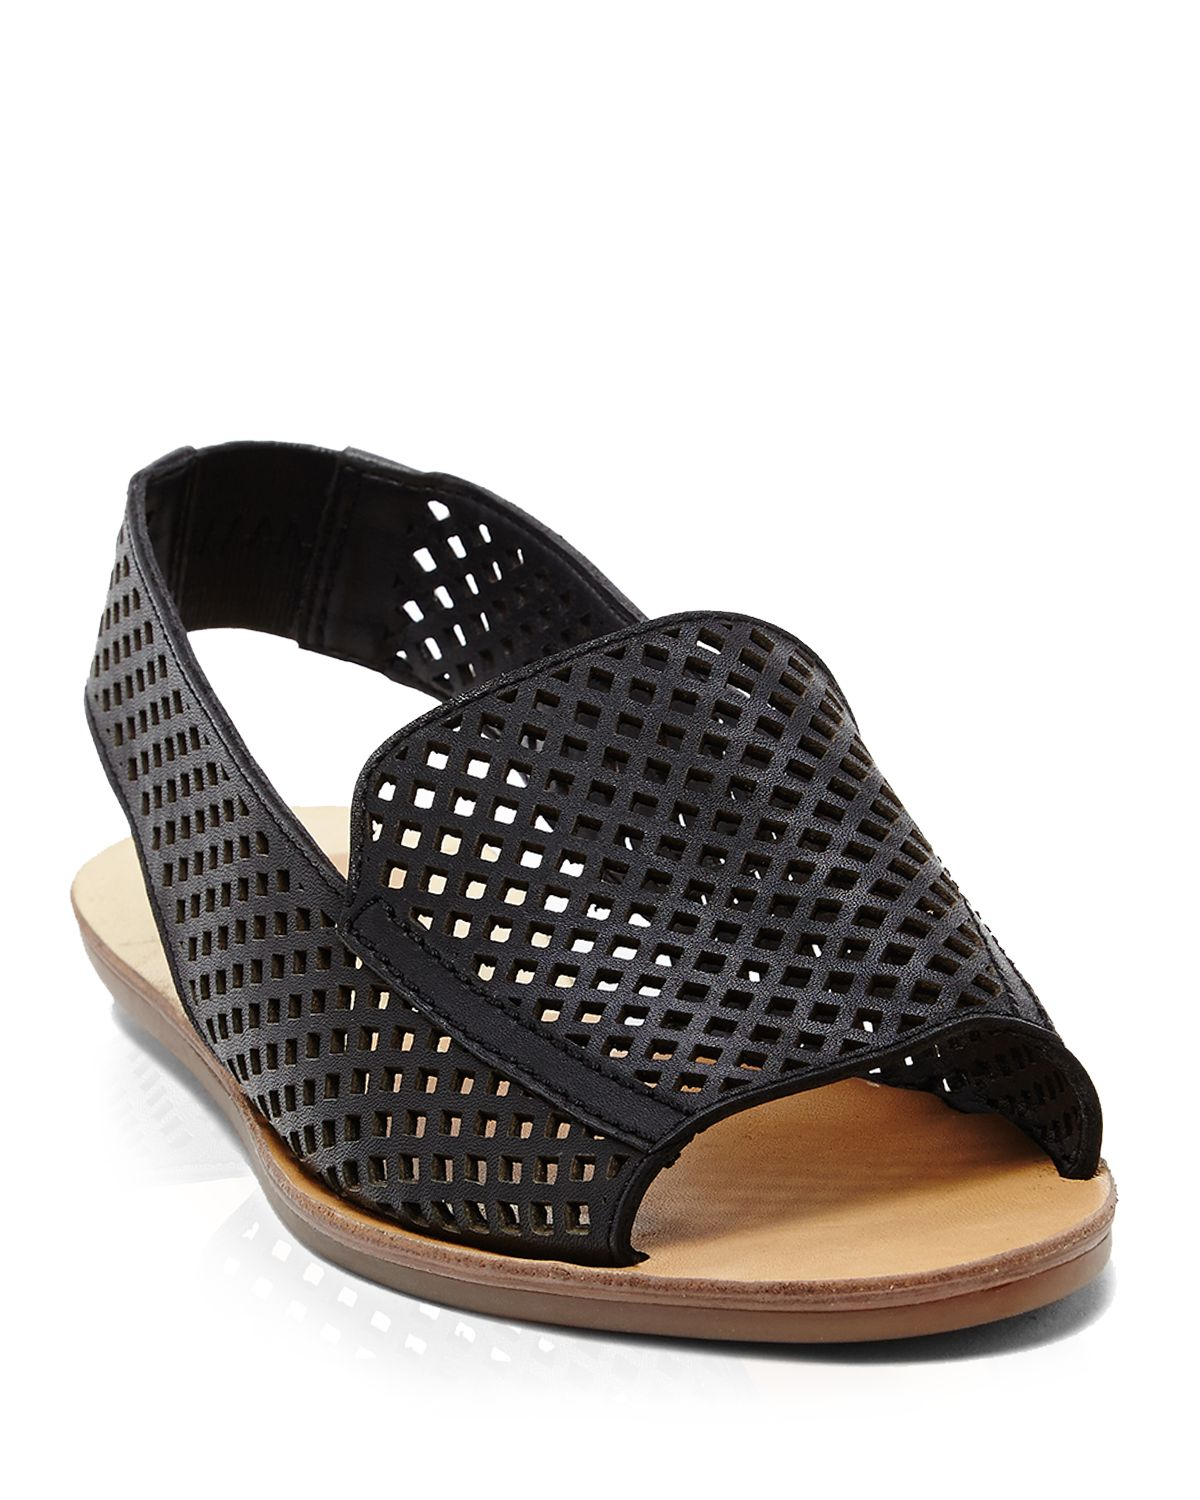 Dolce Vita Open Toe Perforated Slingback Flat Sandals